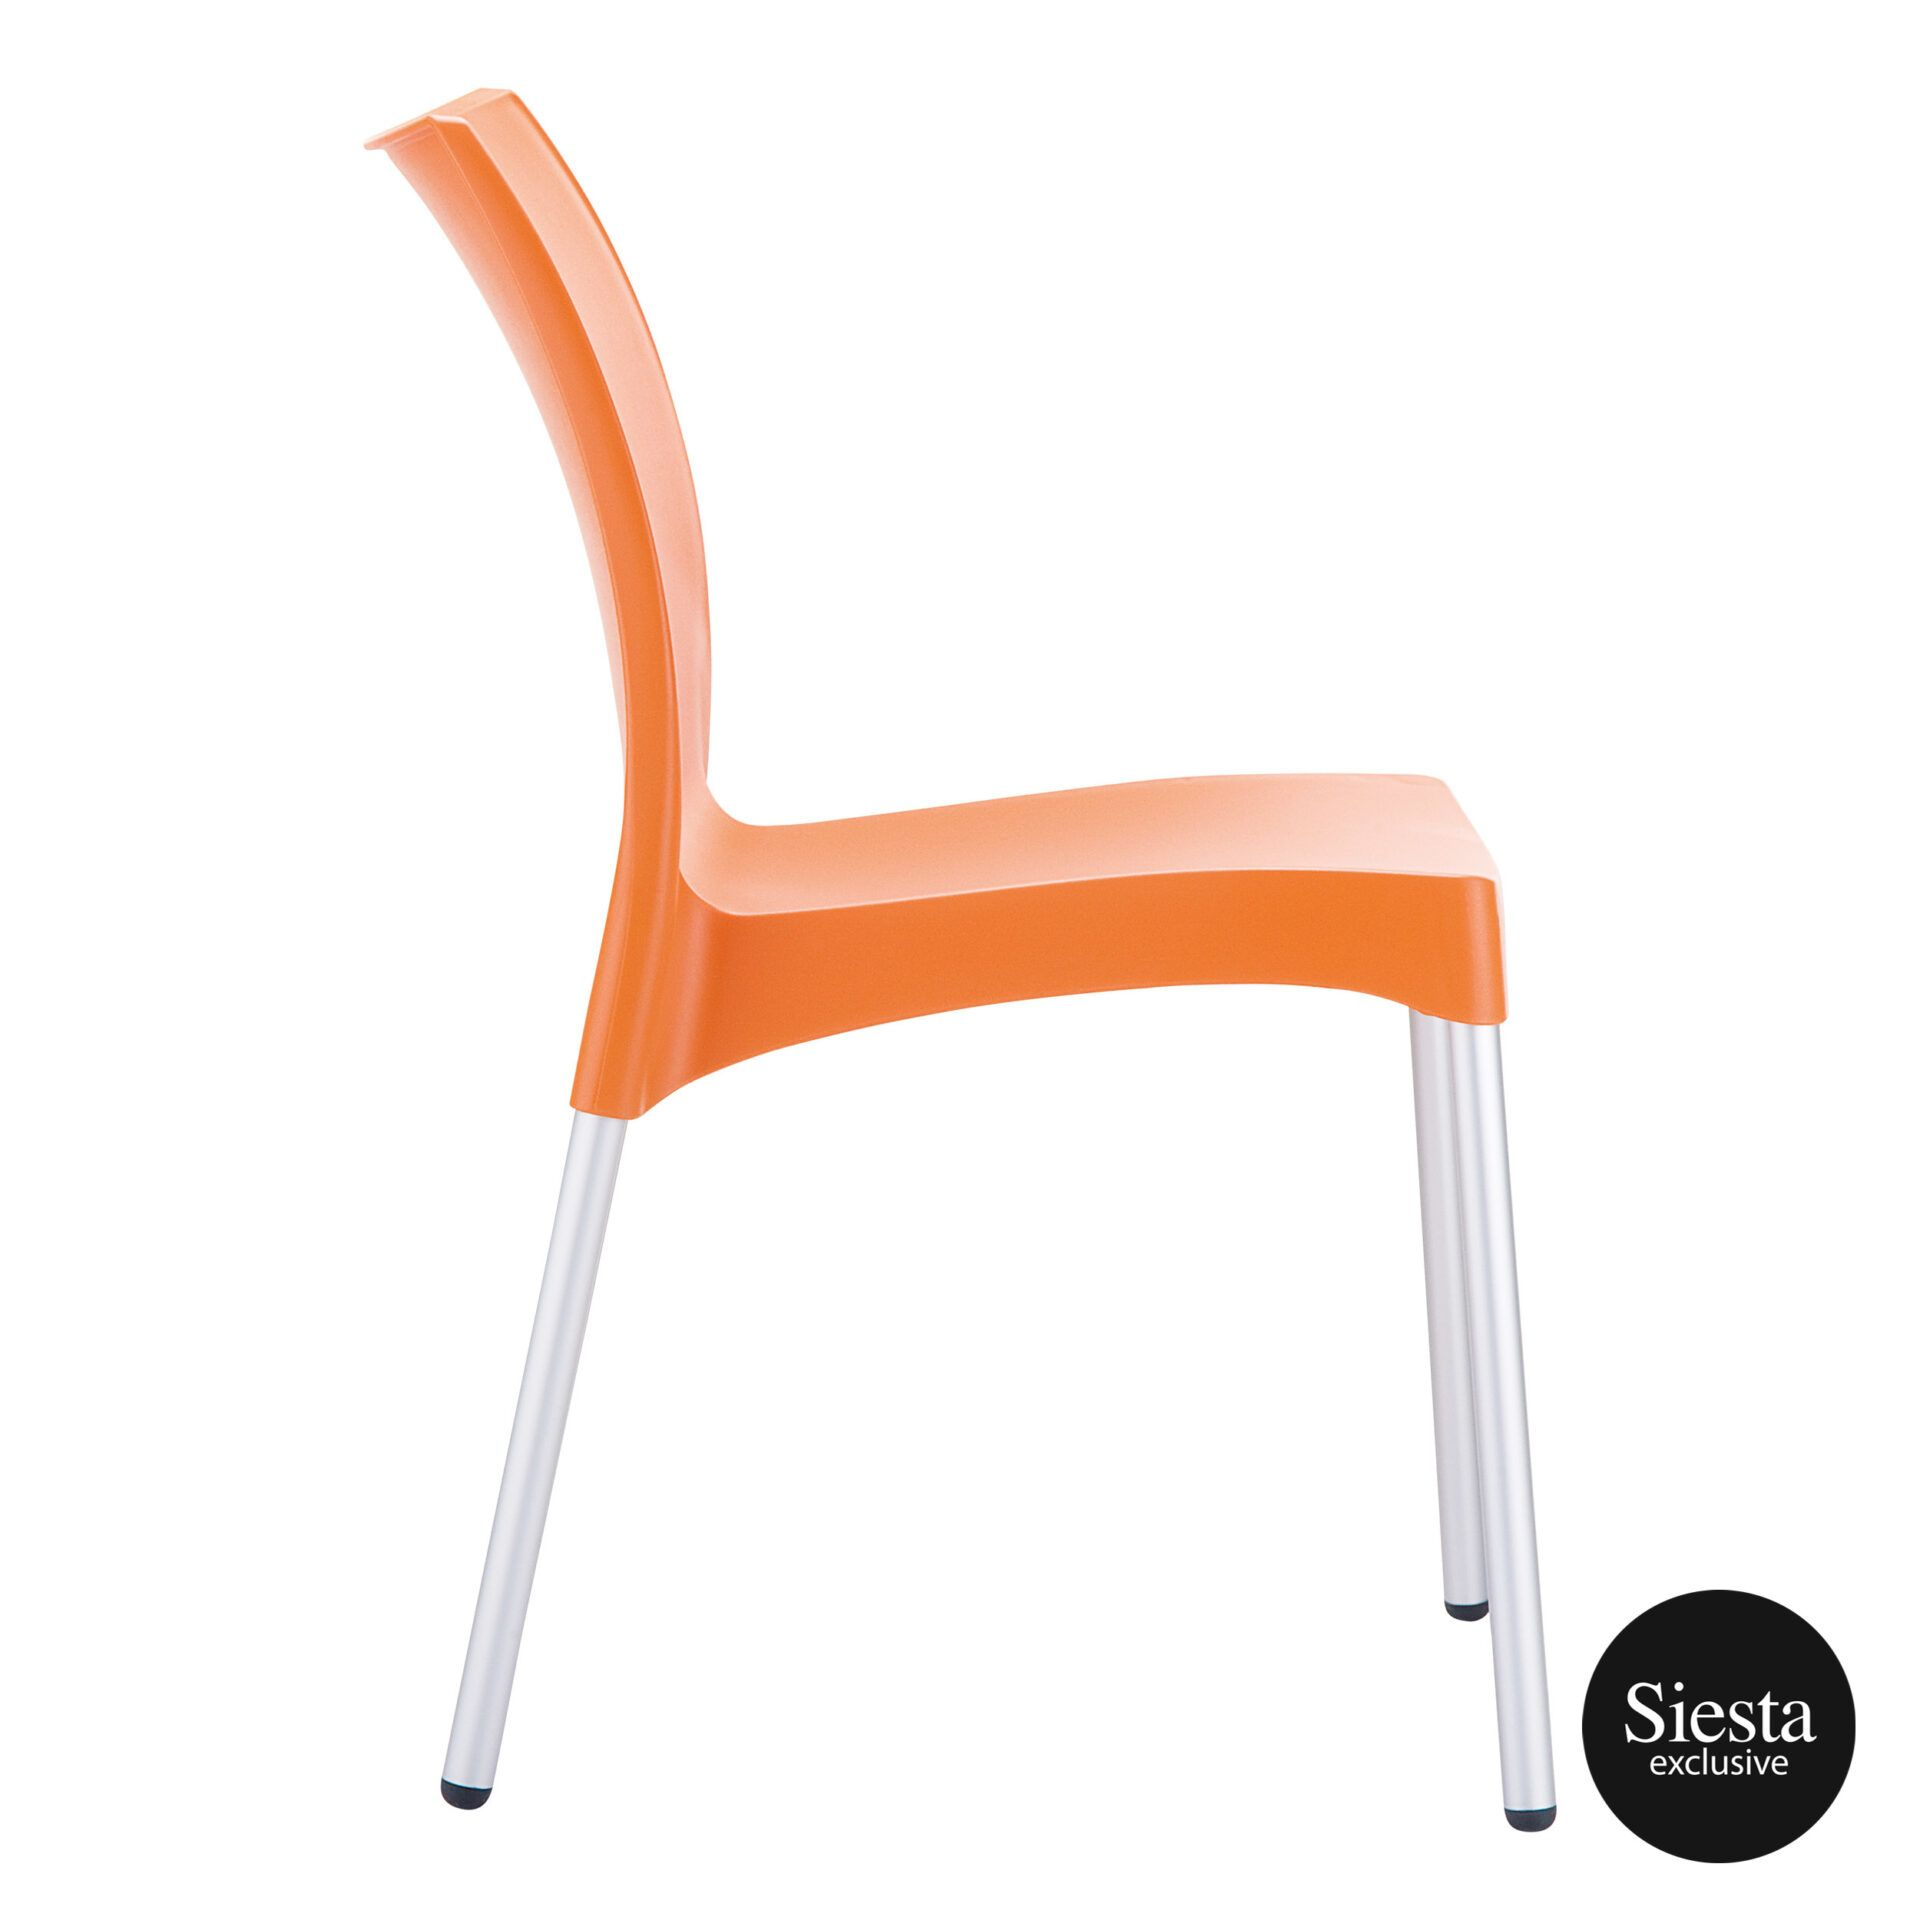 commercial outdoor hospitality seating vita chair orange side 1